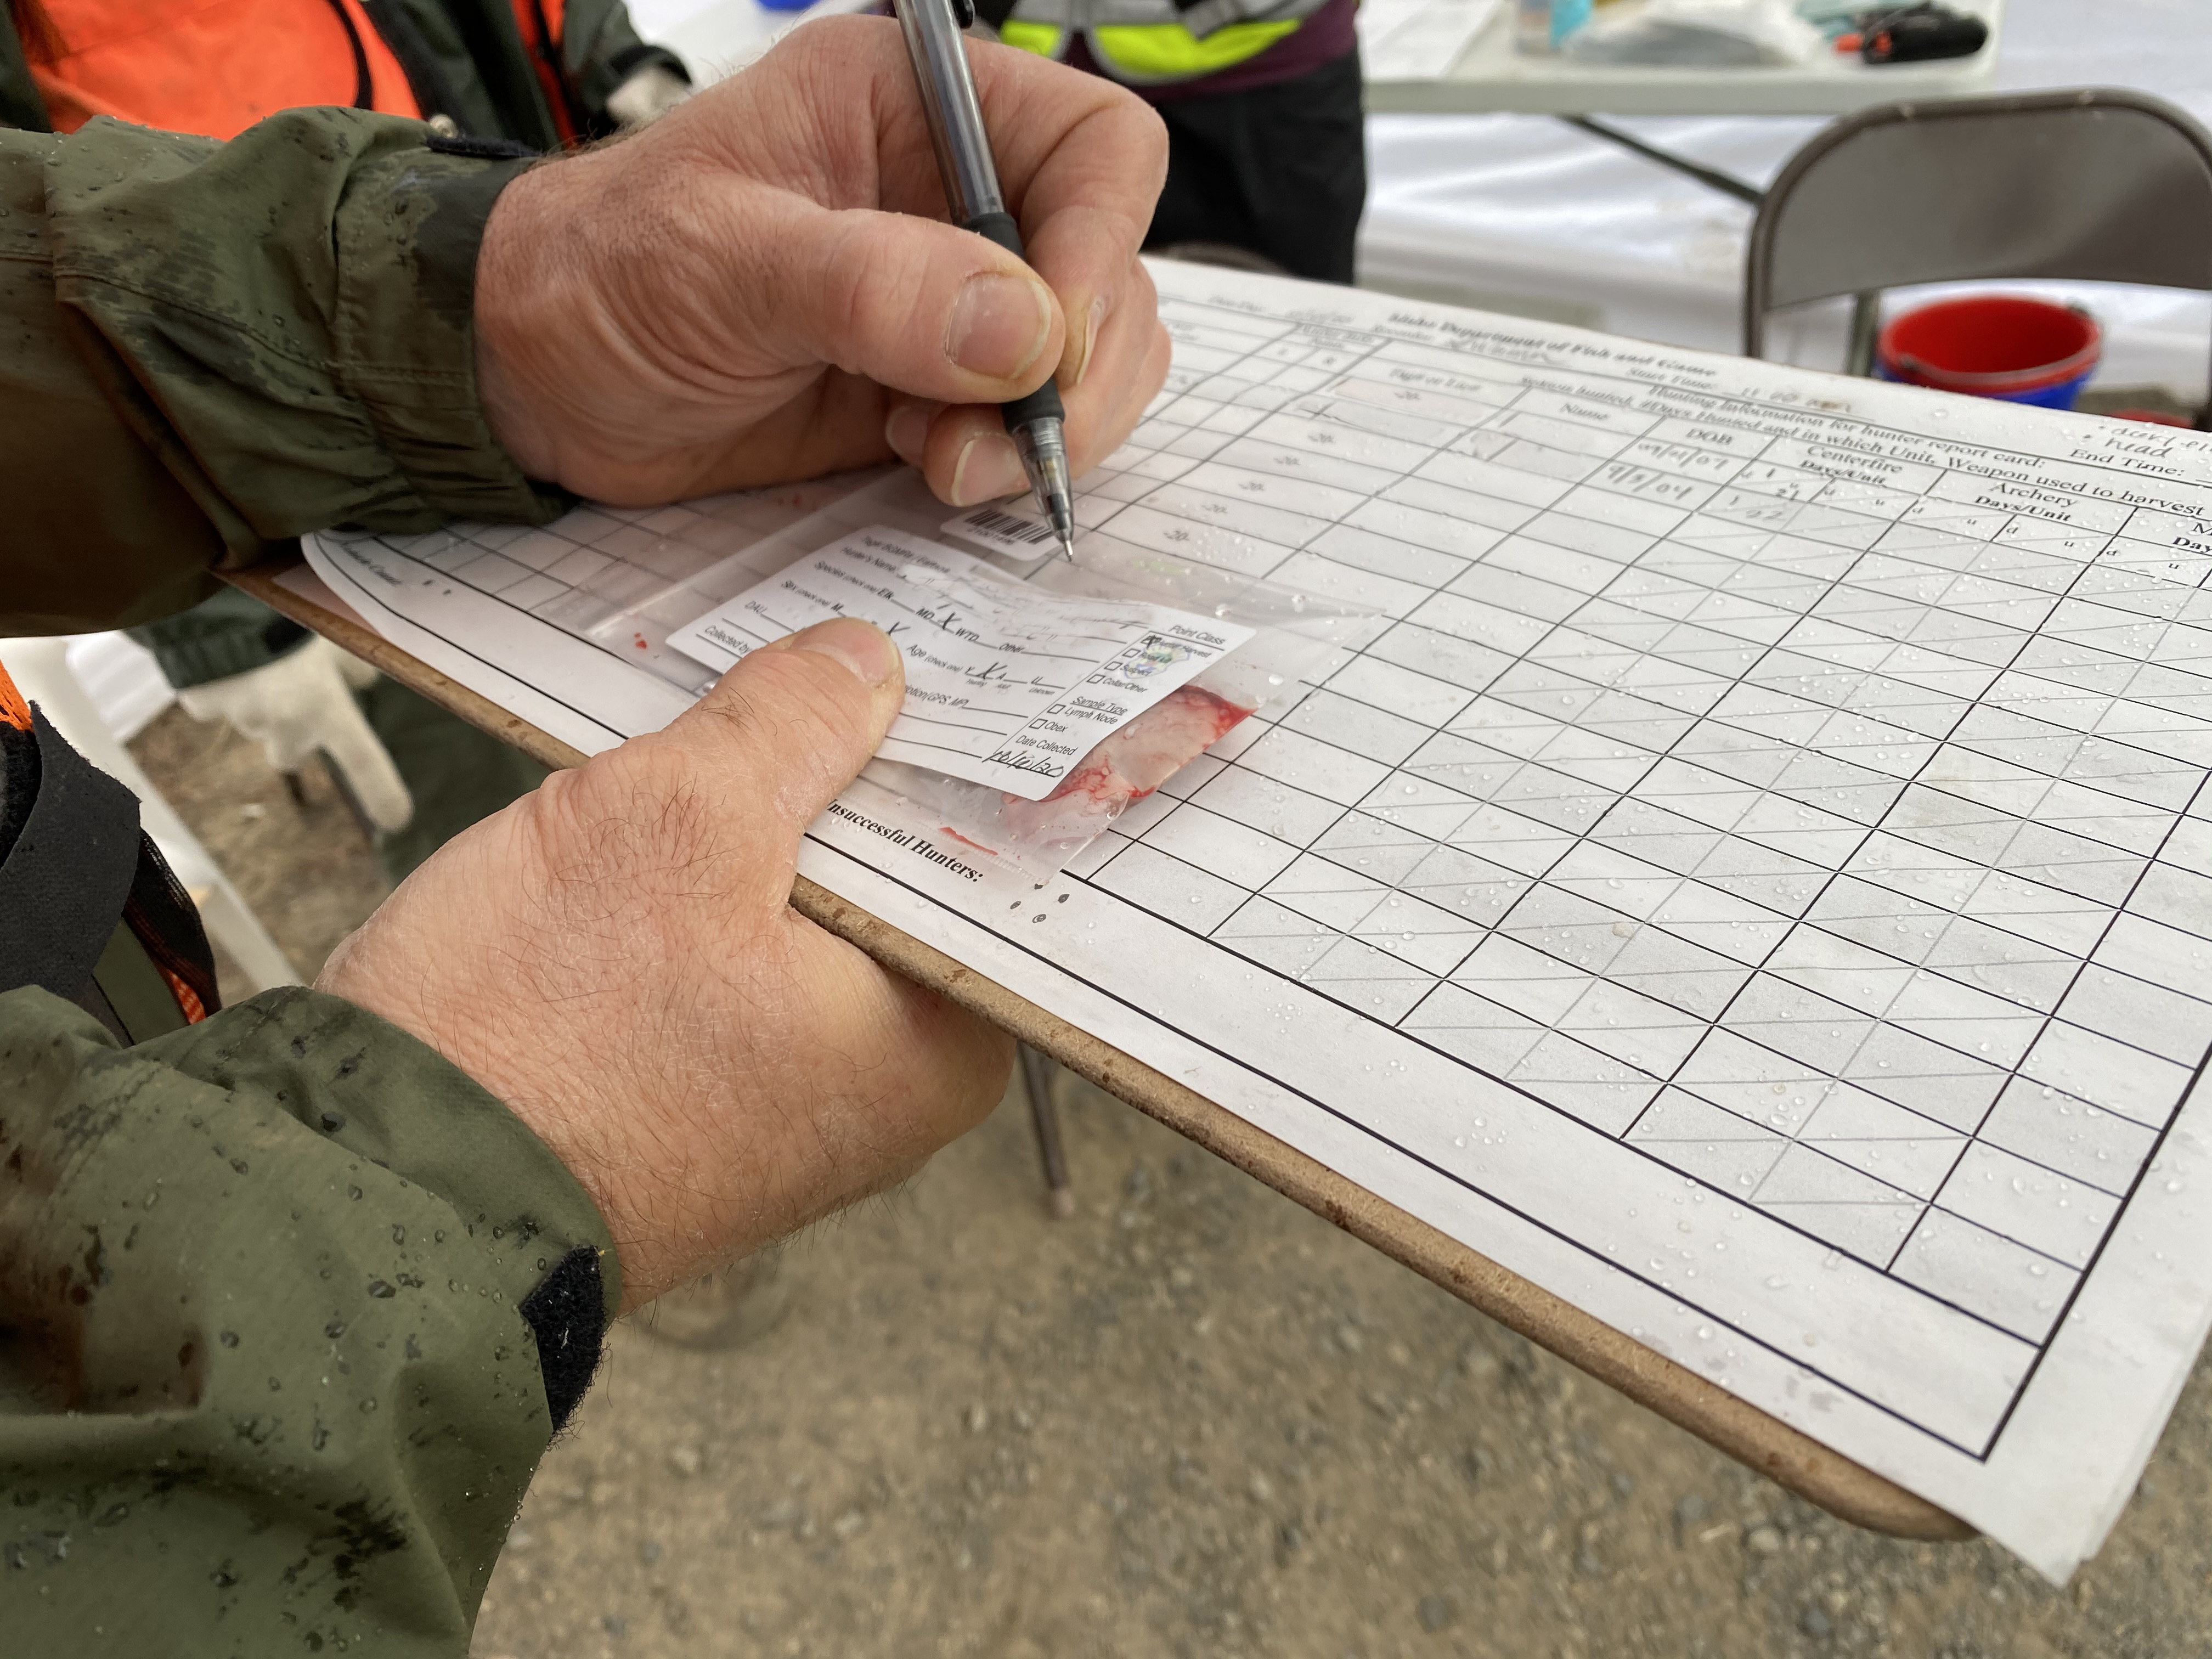 A Fish and Game staff member enters information on a CWD sample bag while holding a clipboard.